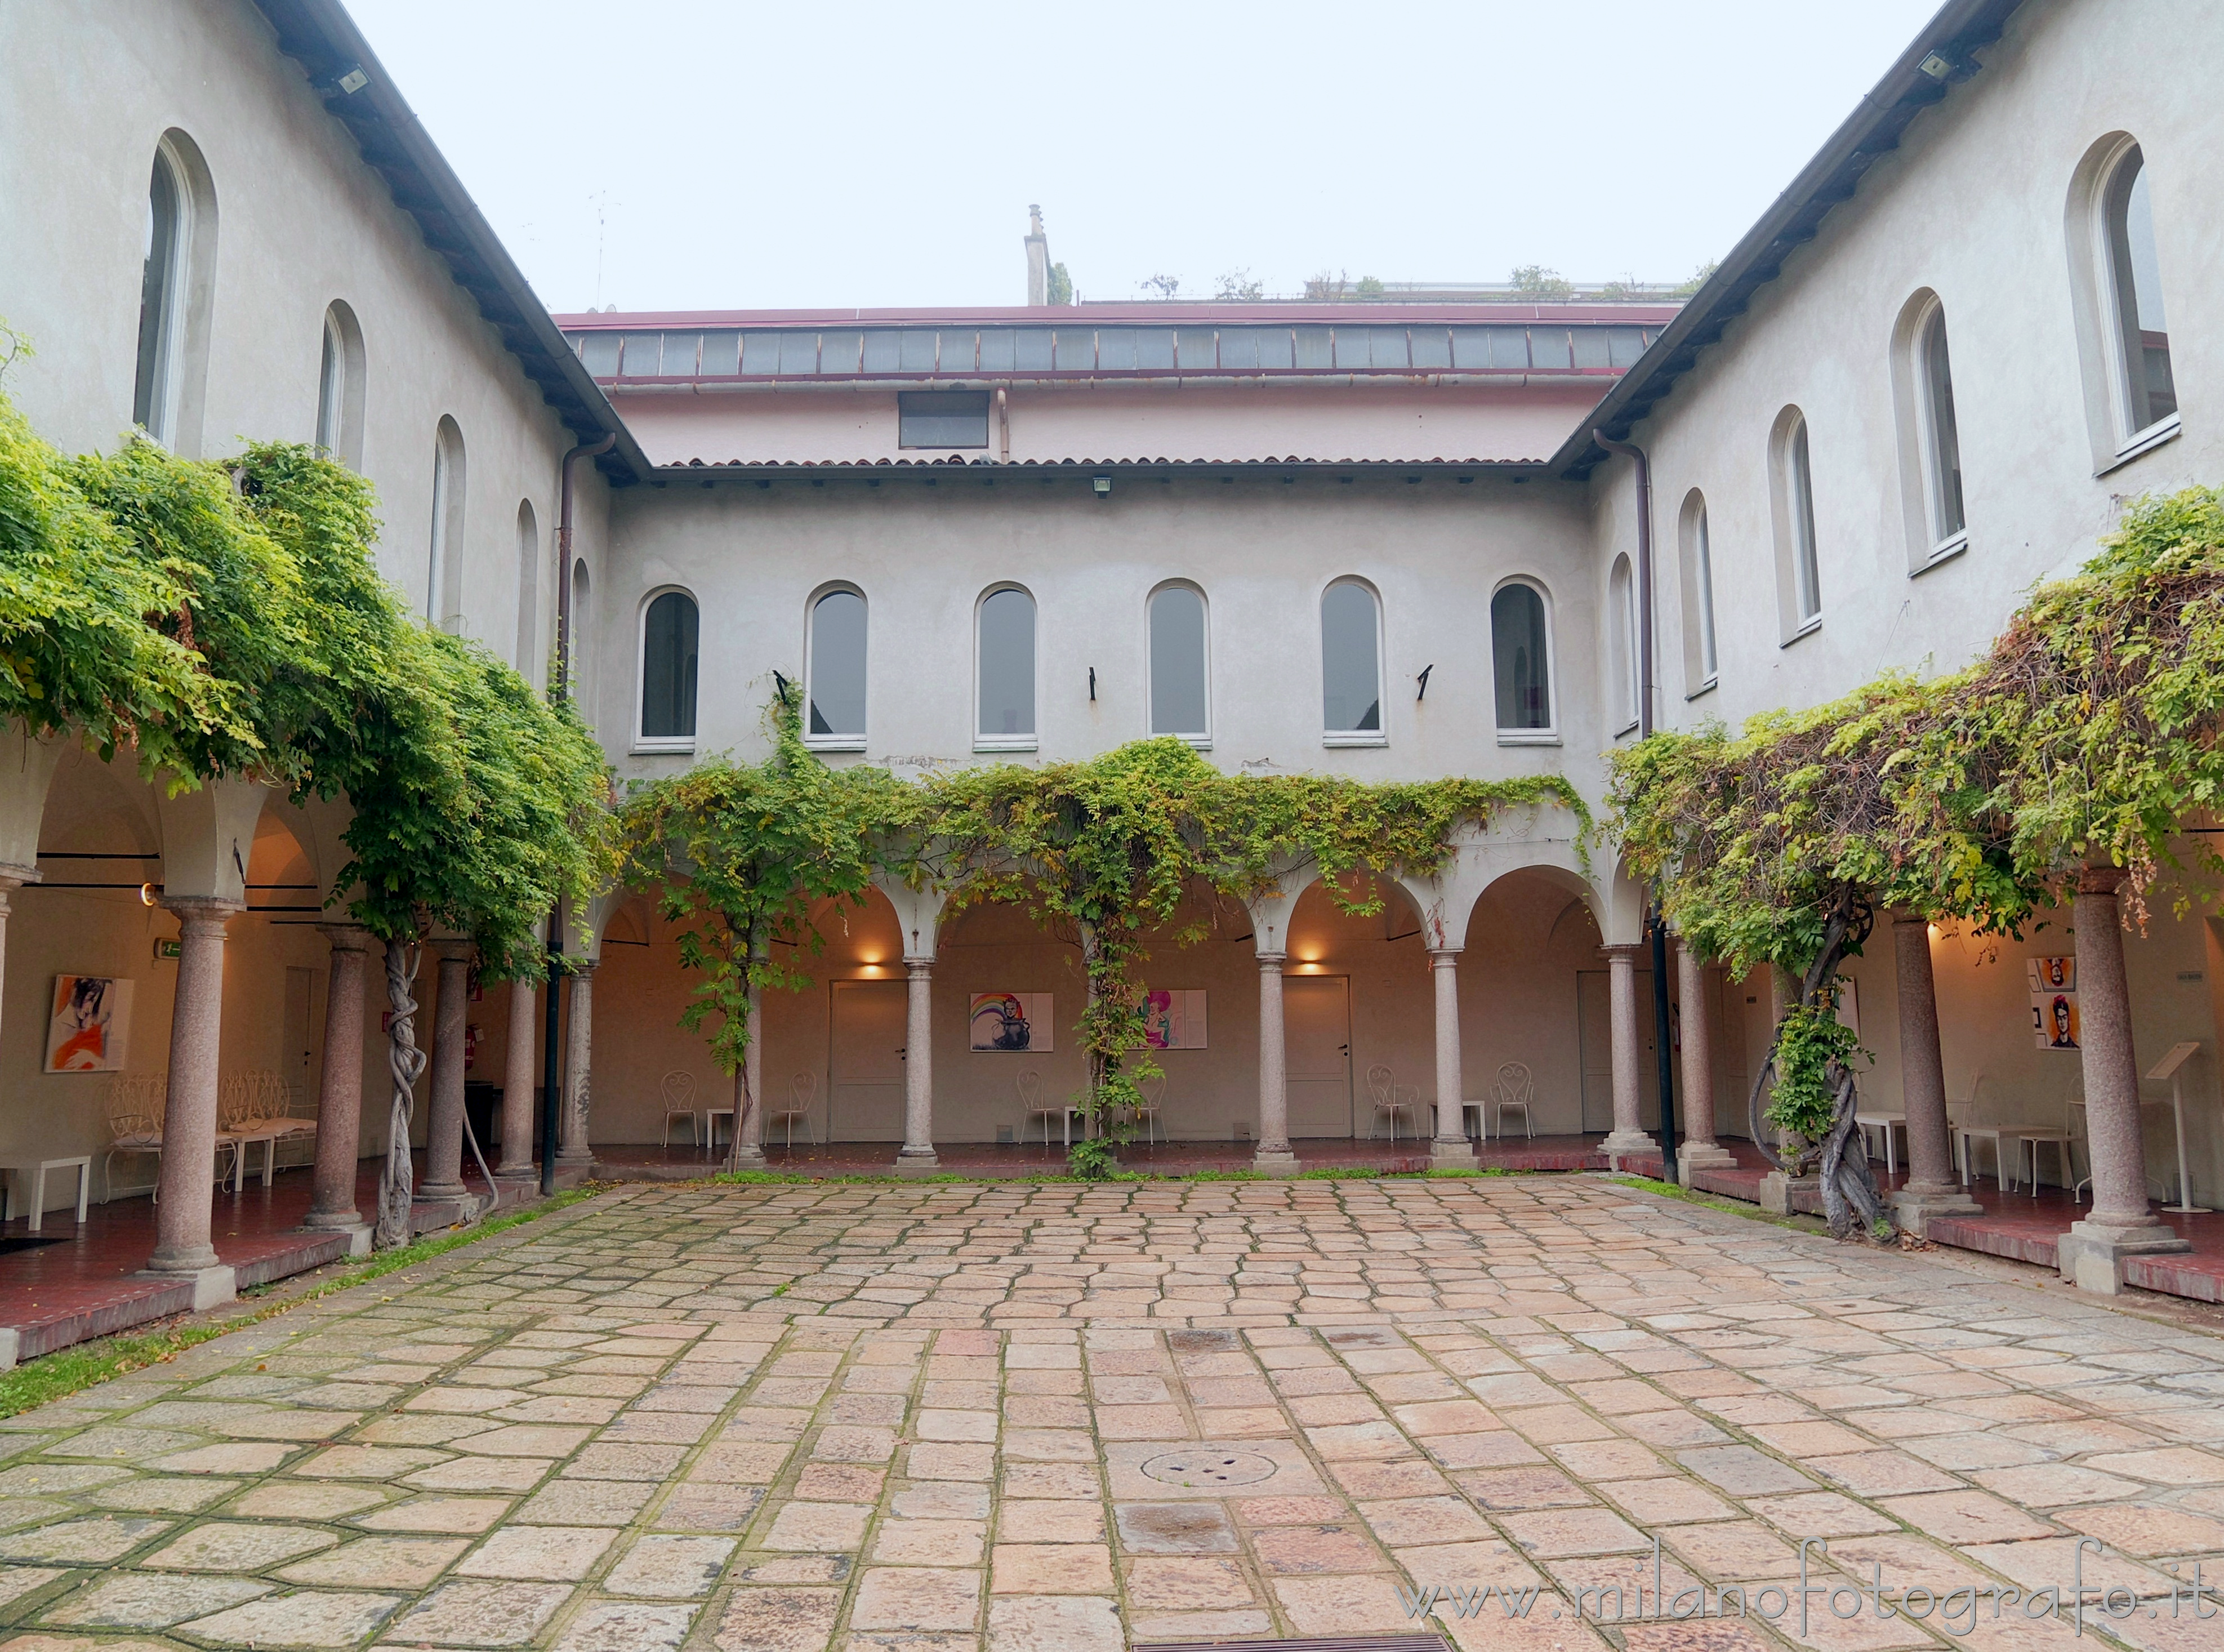 Milan (Italy): One of the Cloisters of the Umanitaria - Milan (Italy)